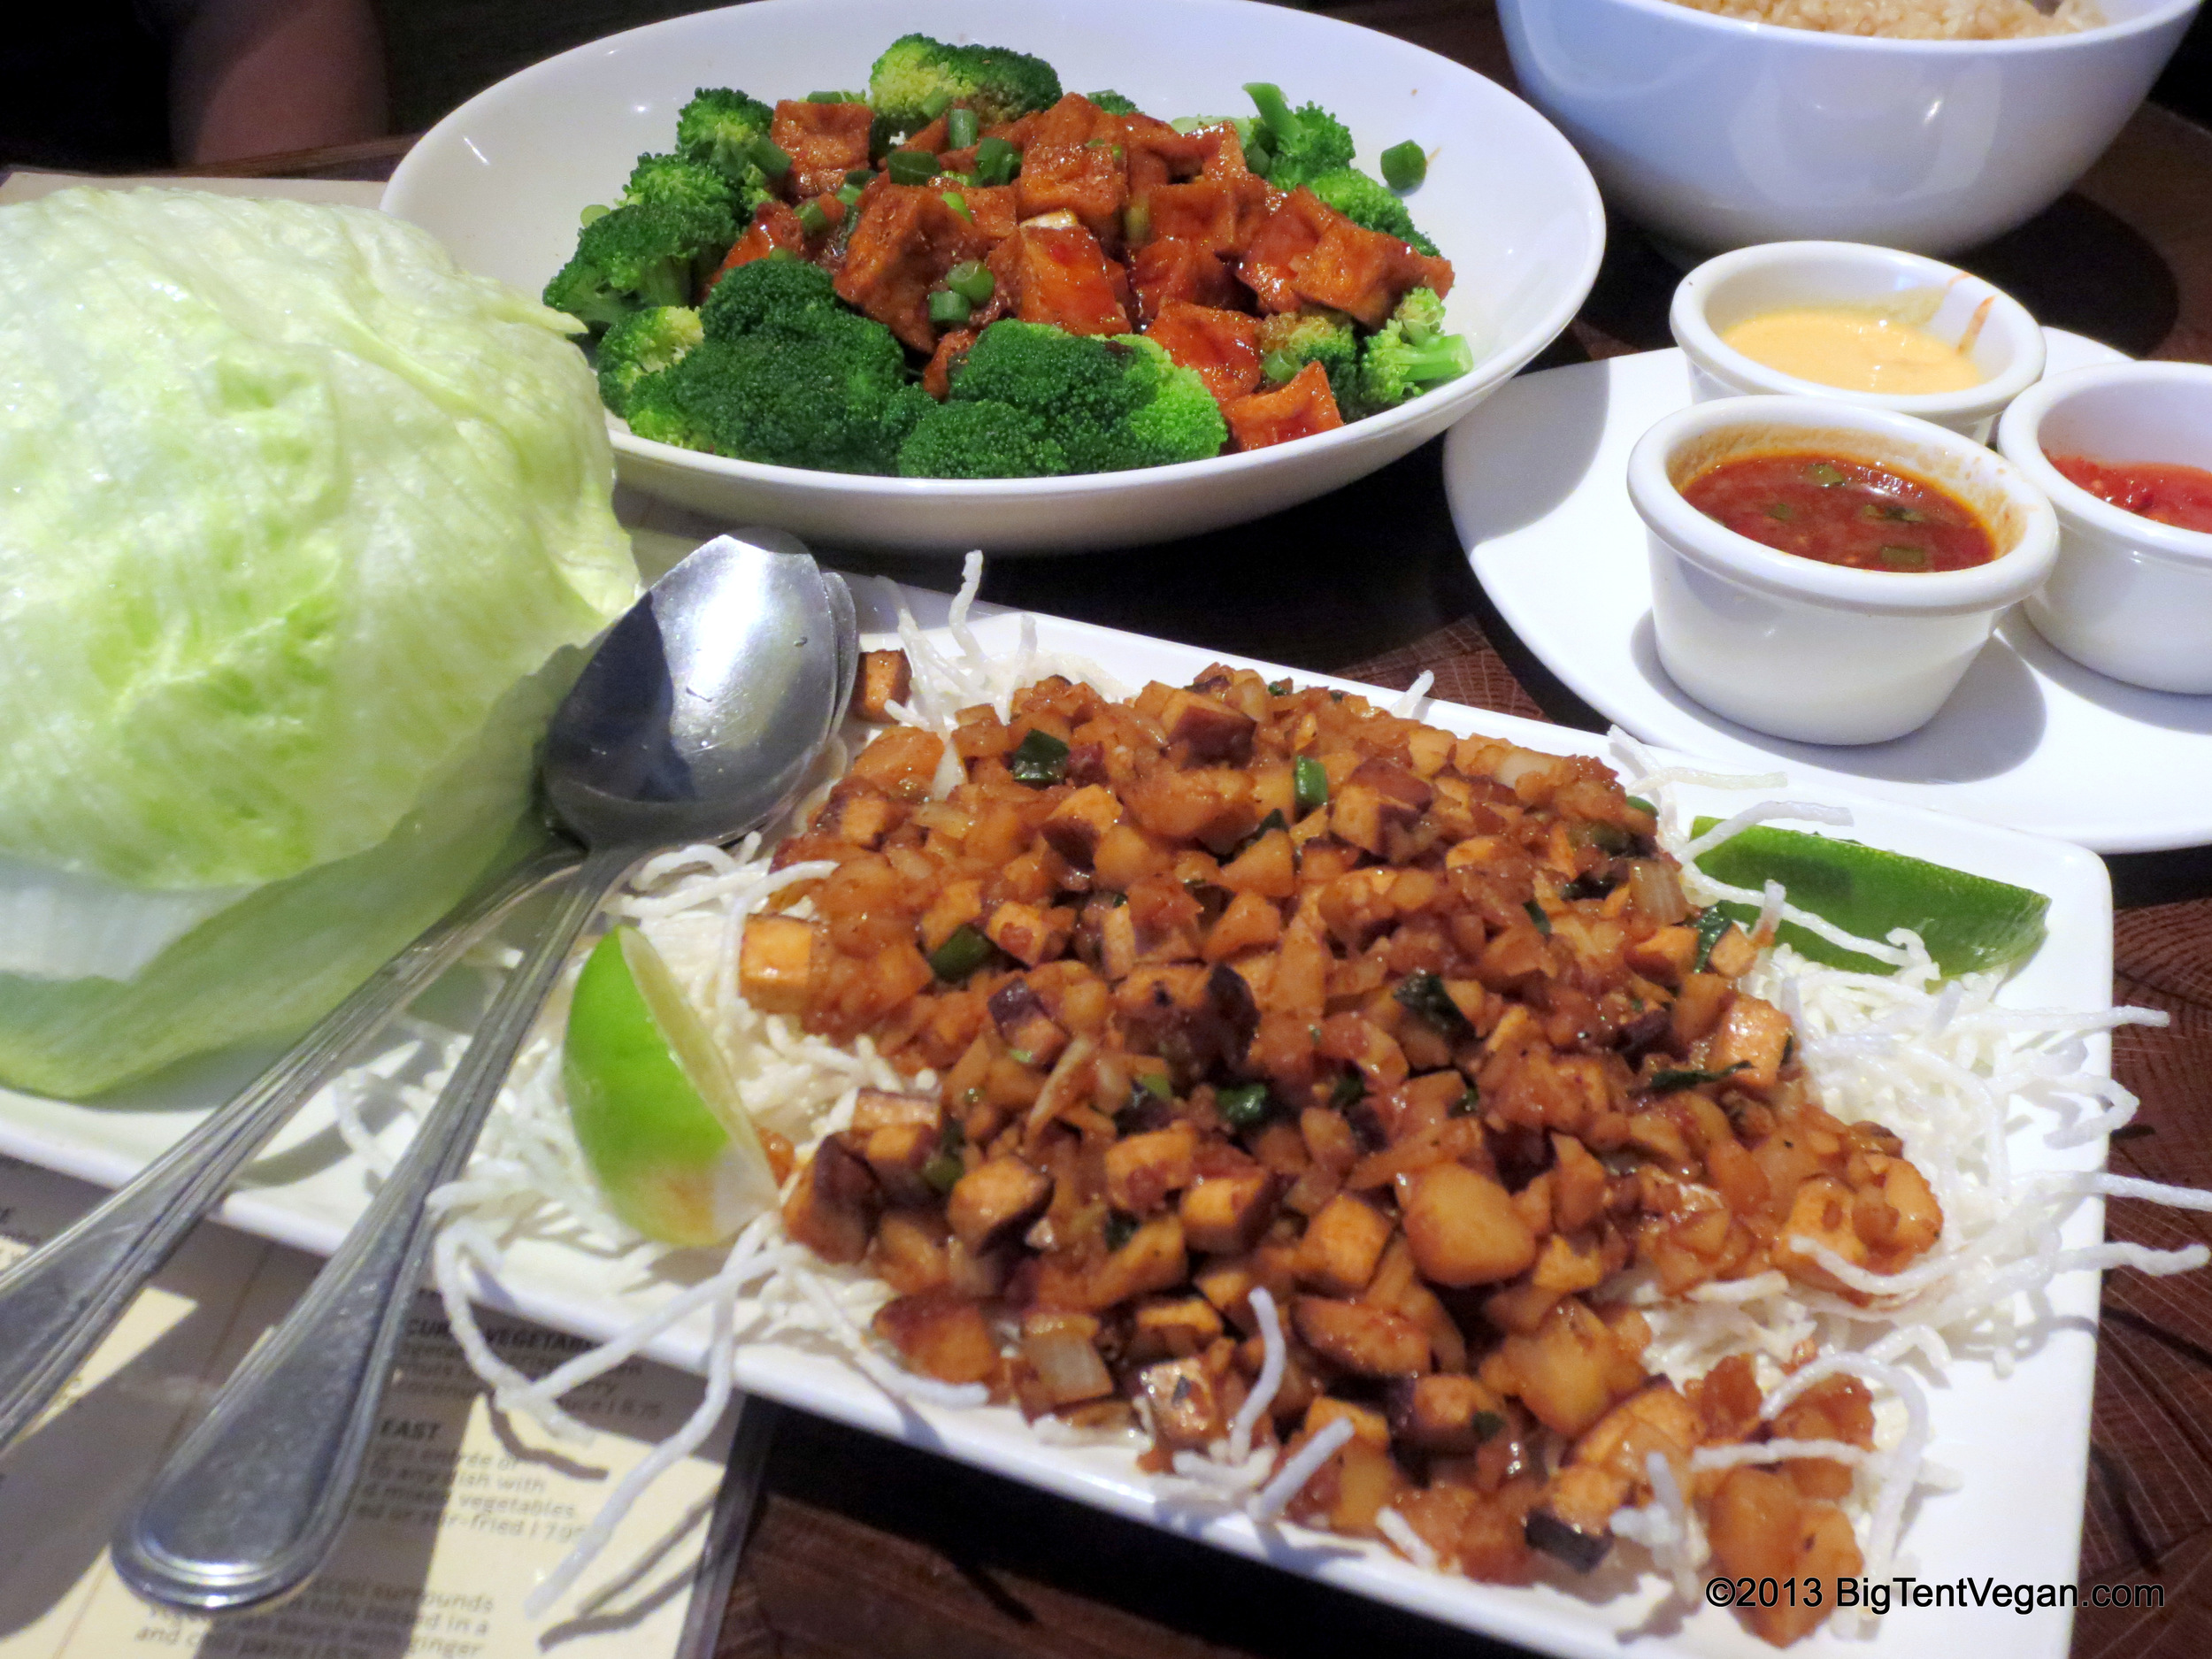 Tofu Lettuce Wraps and Ma Po Tofu with Broccoli from P.F. Chang's (national chain restaurant)